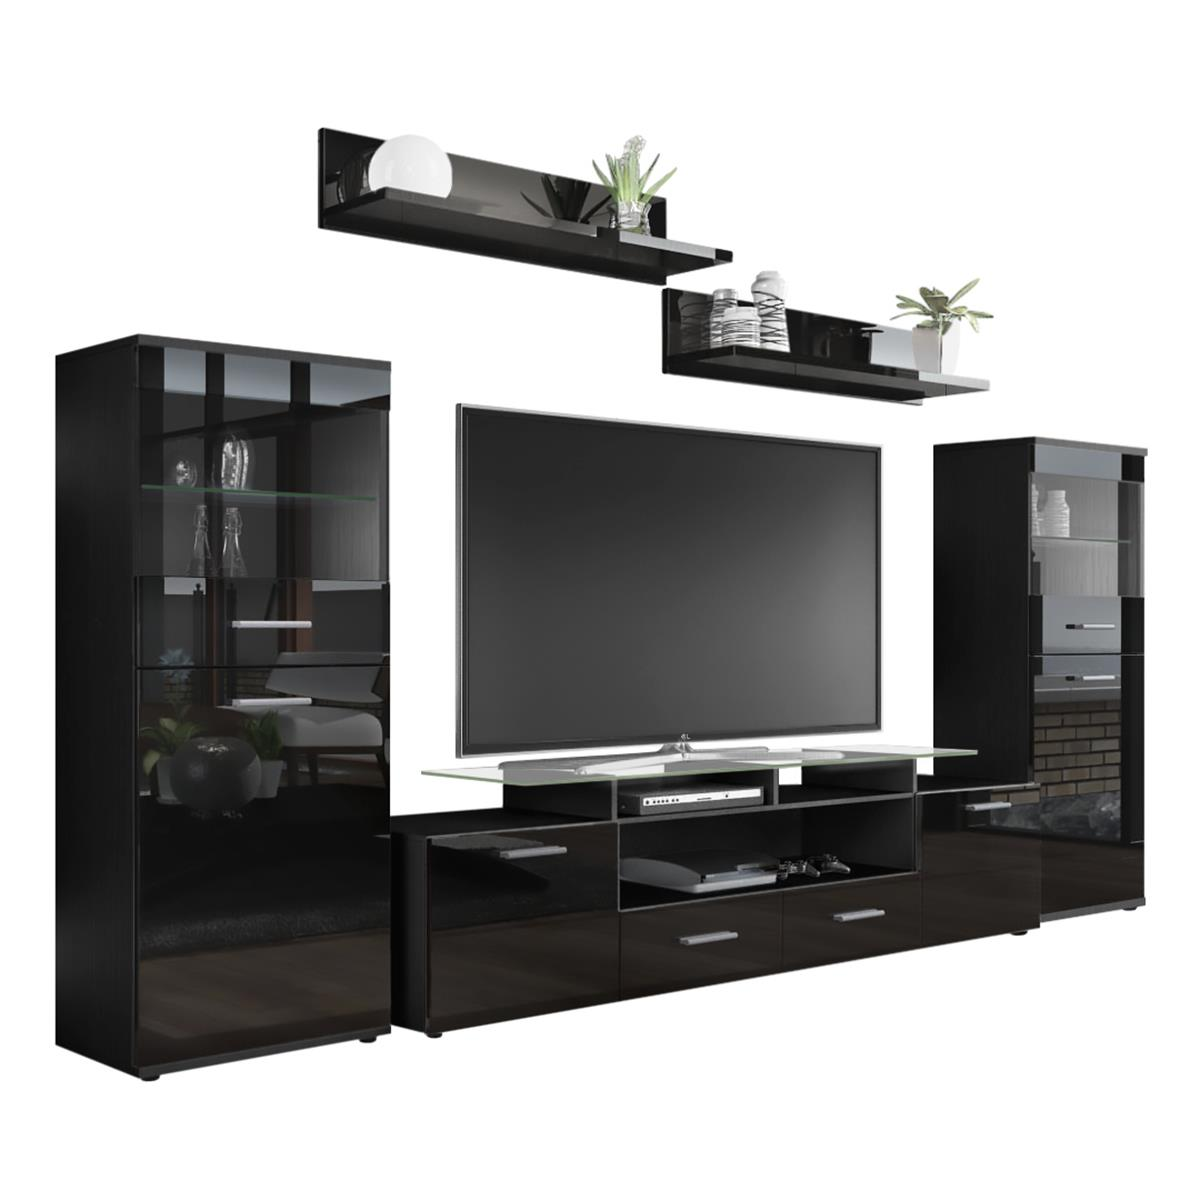 almada v2 wohnwand in hochglanz mit led beleuchtung. Black Bedroom Furniture Sets. Home Design Ideas